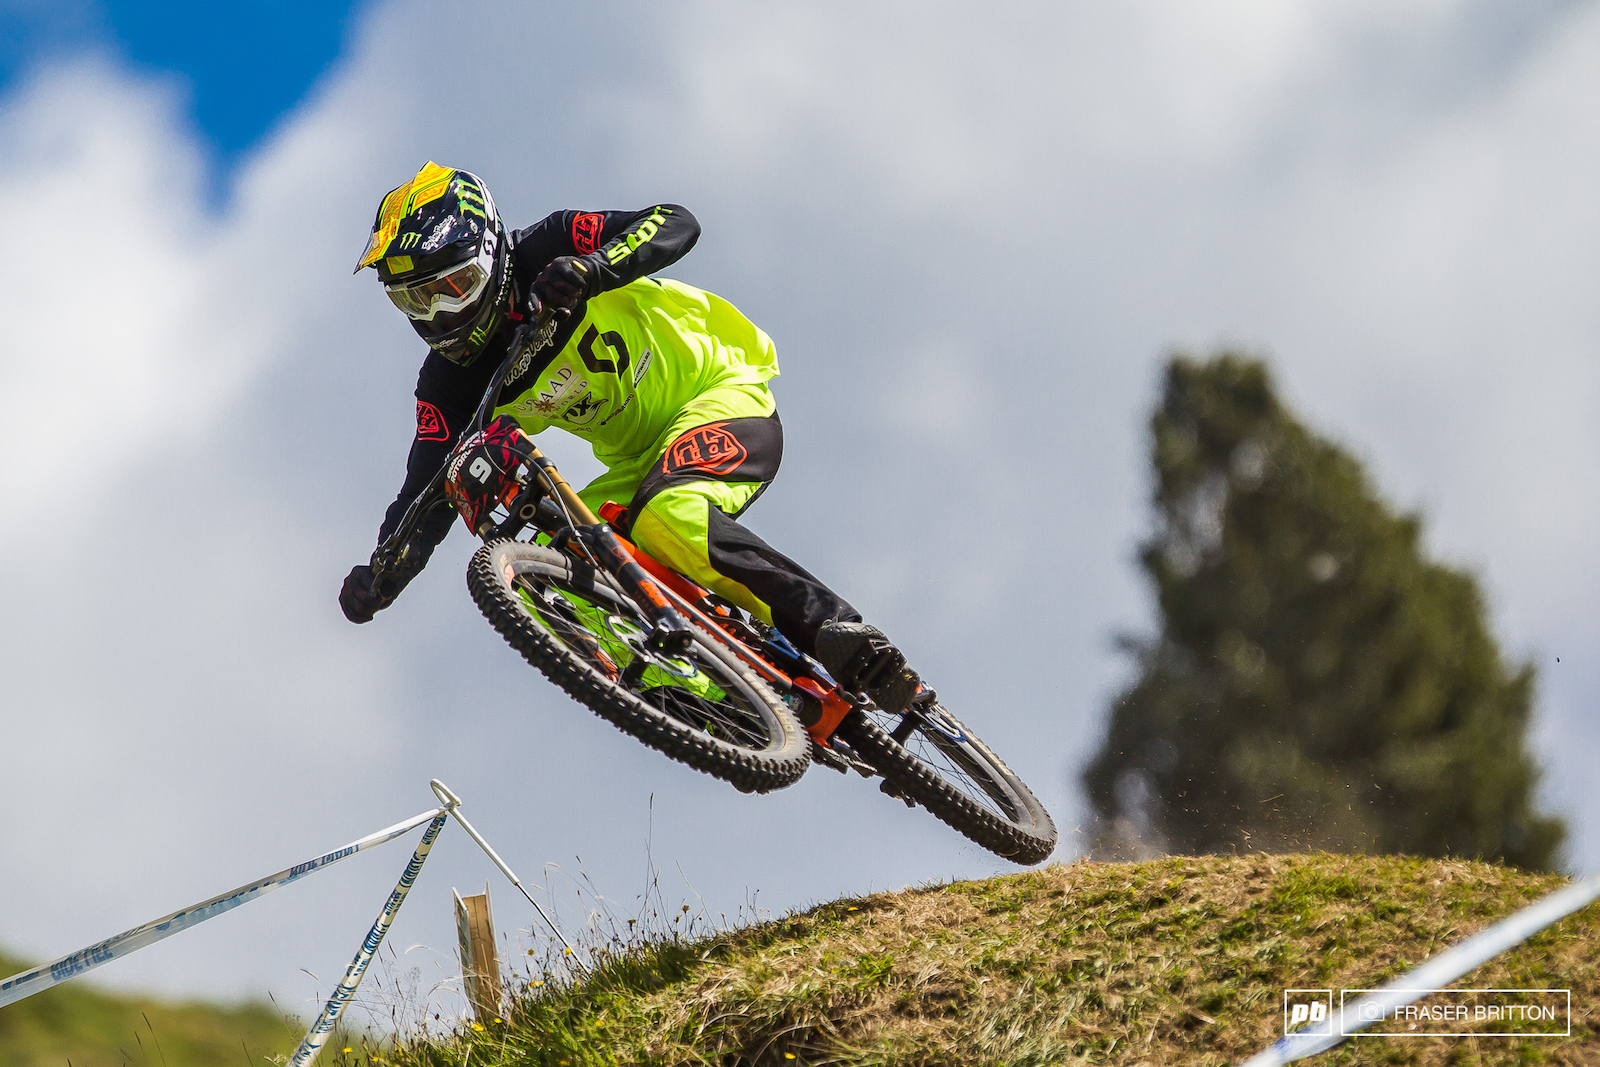 Brendan Fairclough broke his chain right out of the gate today. I m gutted it was such a good week and the track is sick. Brendog pumped and jumped his way down the mountain with a chain wrapped around his cassette and multiple broken spokes.